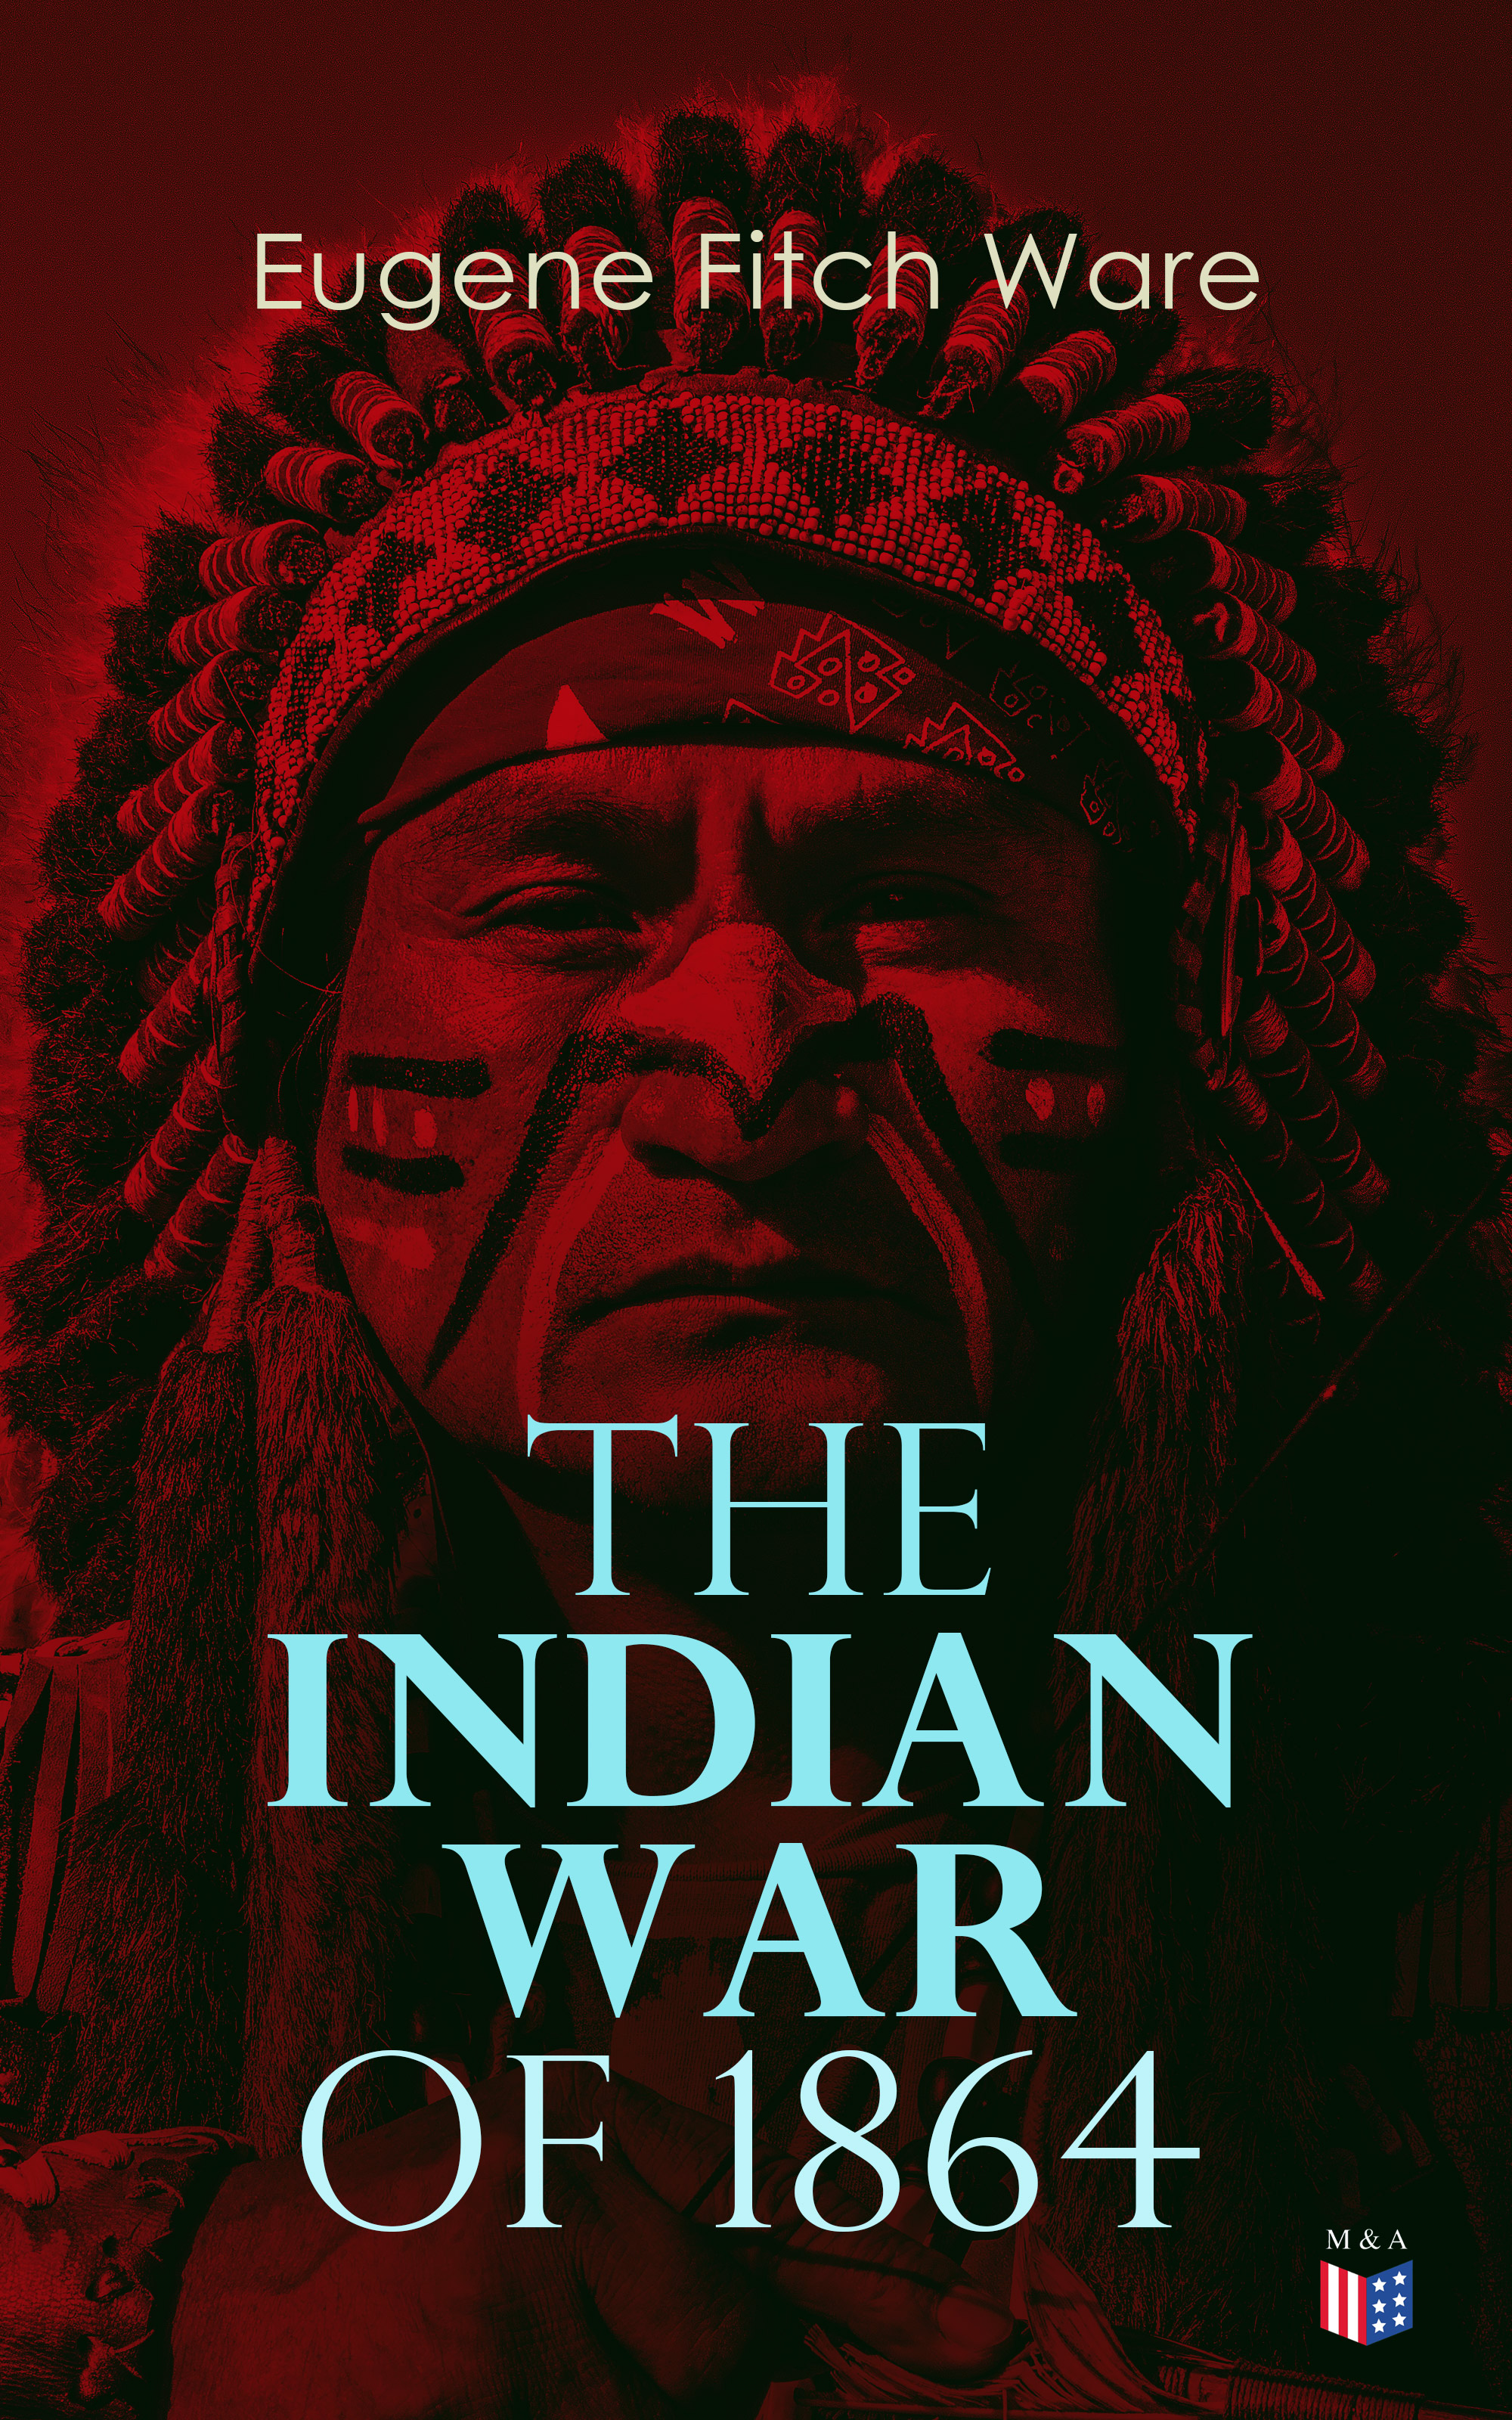 Eugene Fitch Ware The Indian War of 1864 eugene field the house